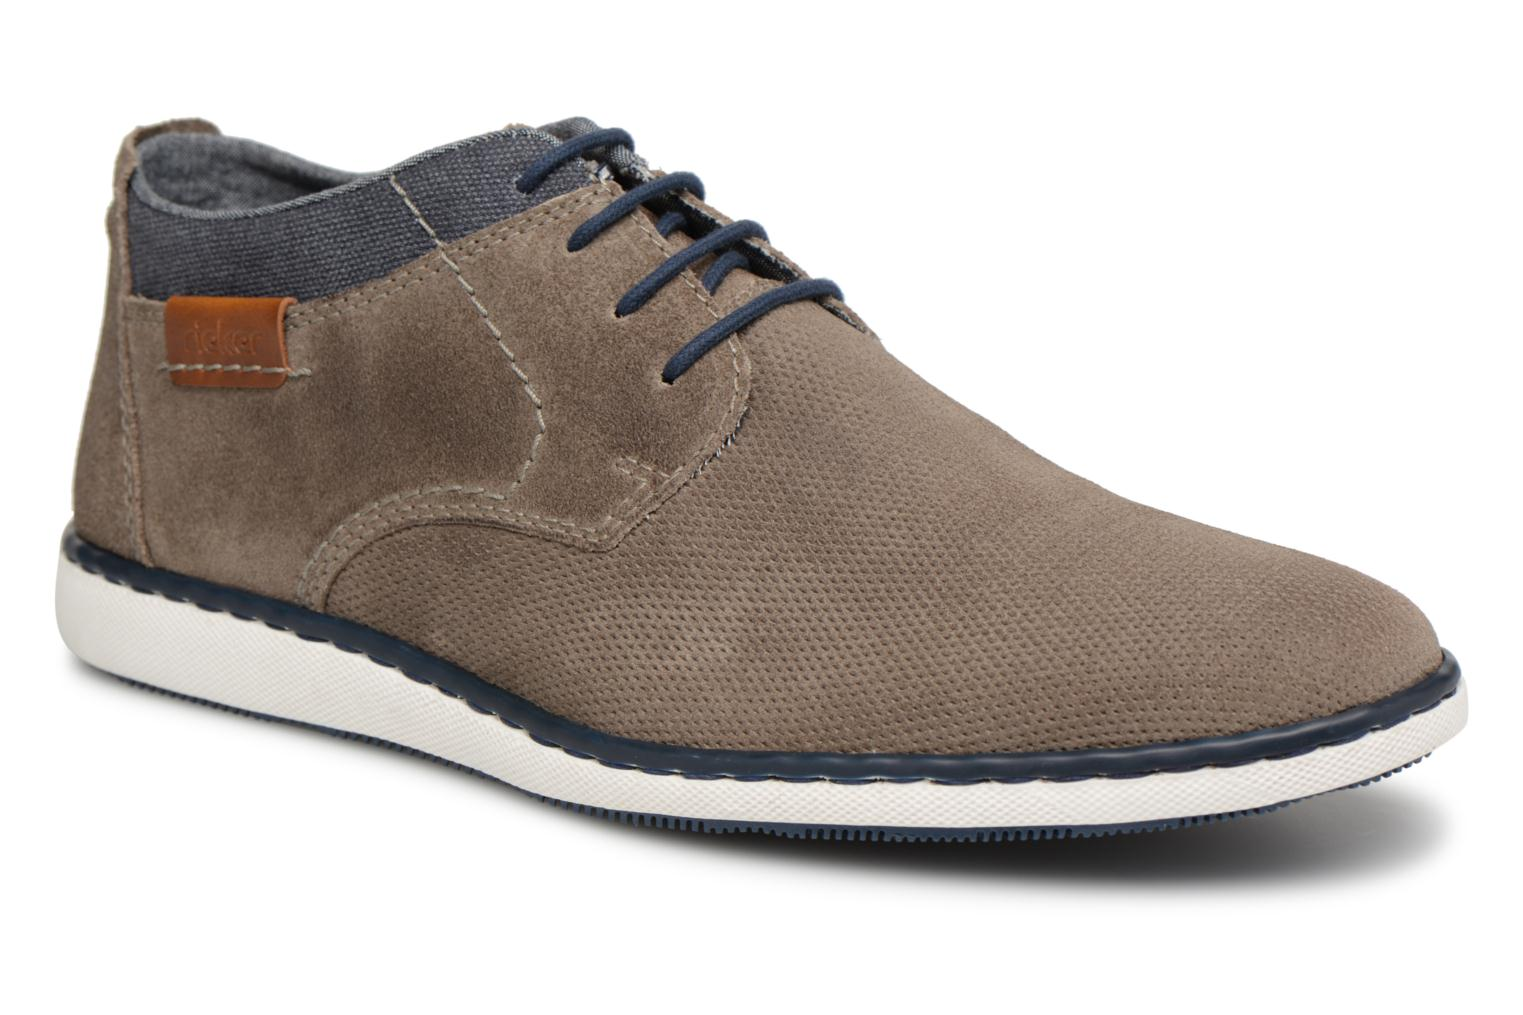 Marques Chaussure homme Mr SARENZA homme Surtop Grey/Tan